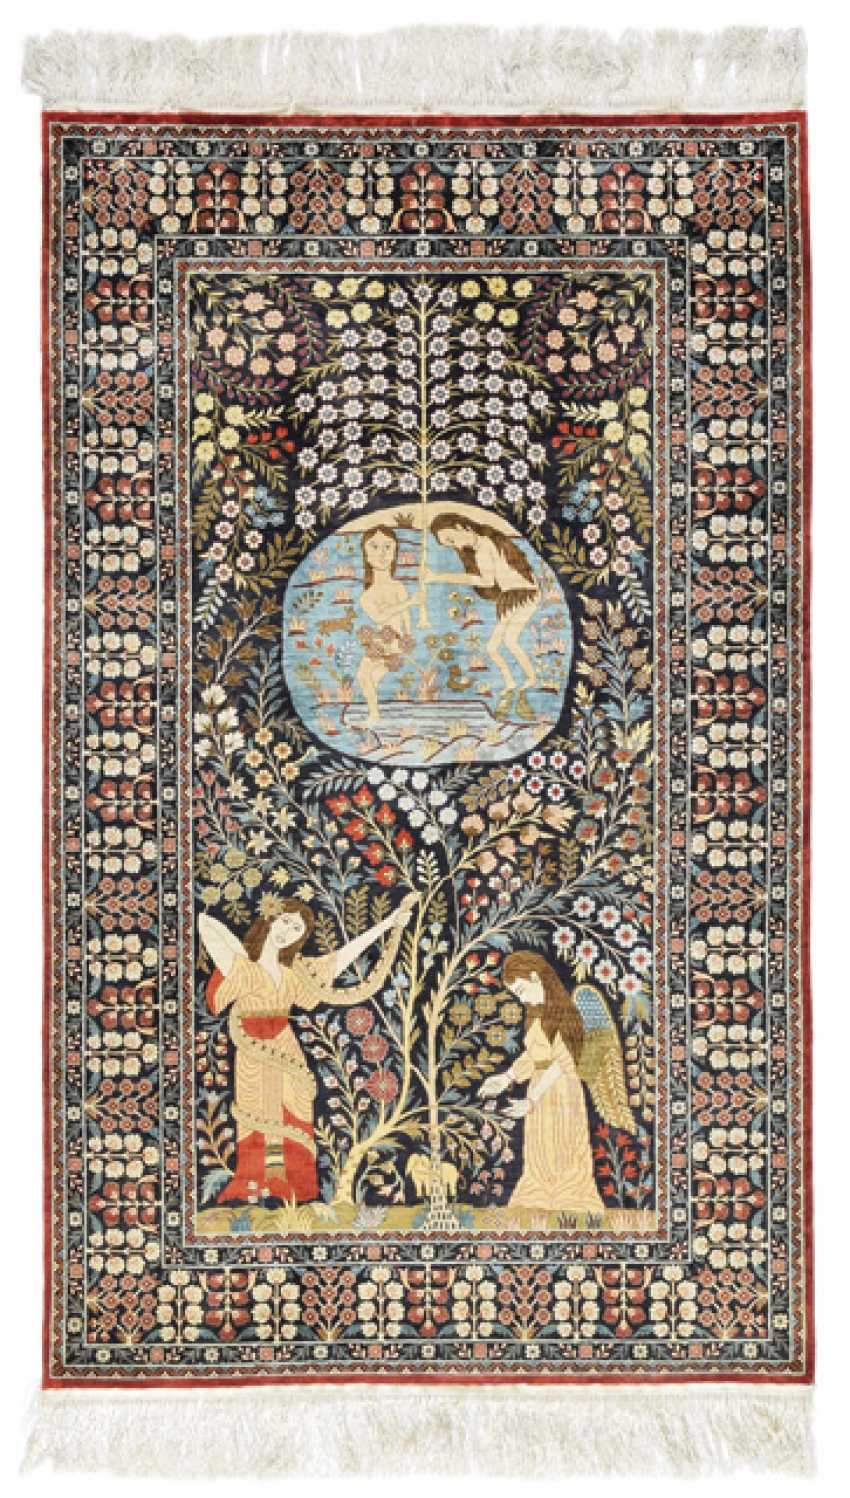 A very fine silk carpet. China, 2. Half of the 20. Century - photo 1